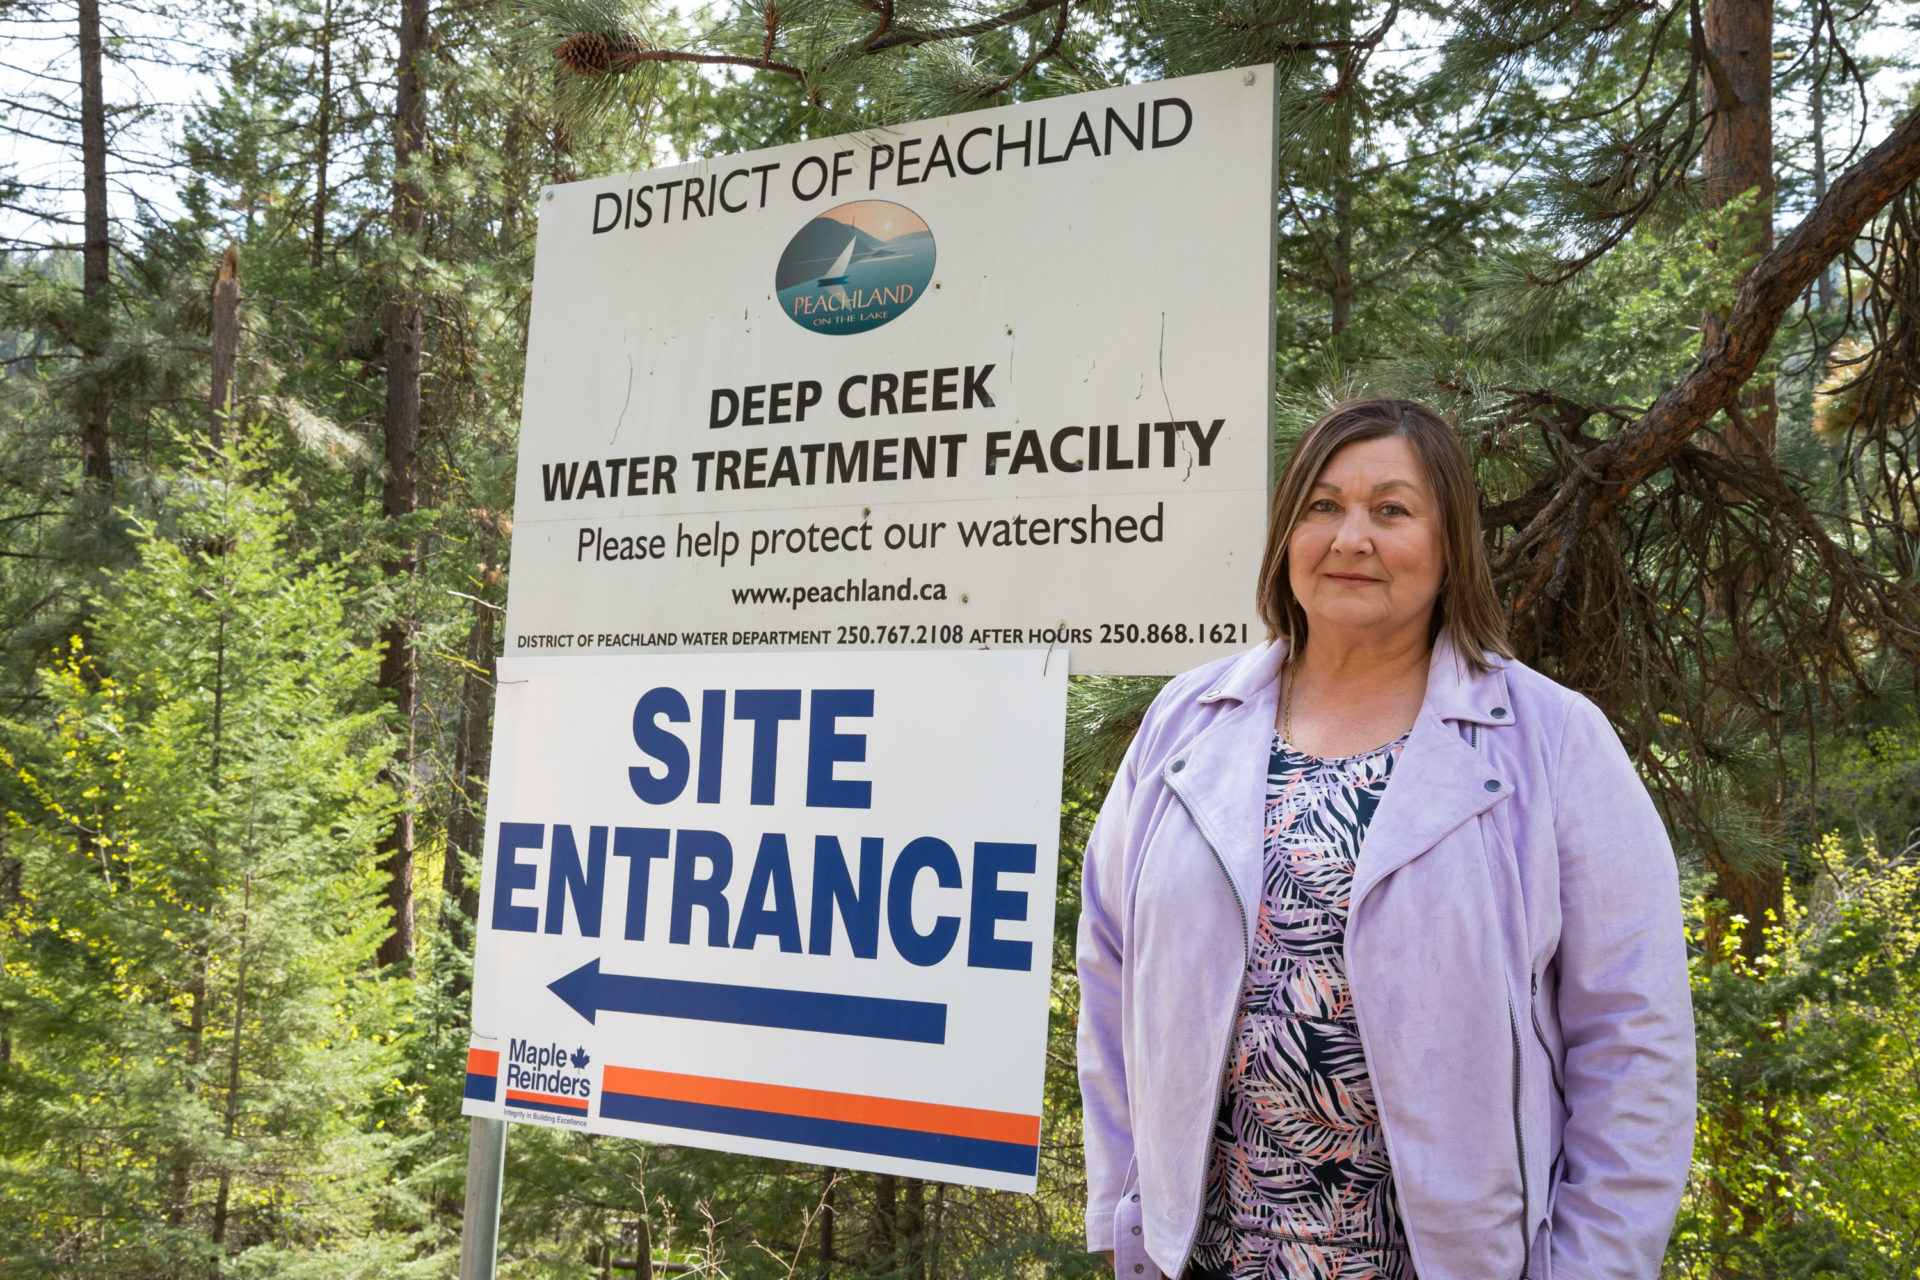 Taryn Skalbania, Deep Creek Water Treatment Plant located on McDougald Rd, Peachland, photo by Travis Oleniak